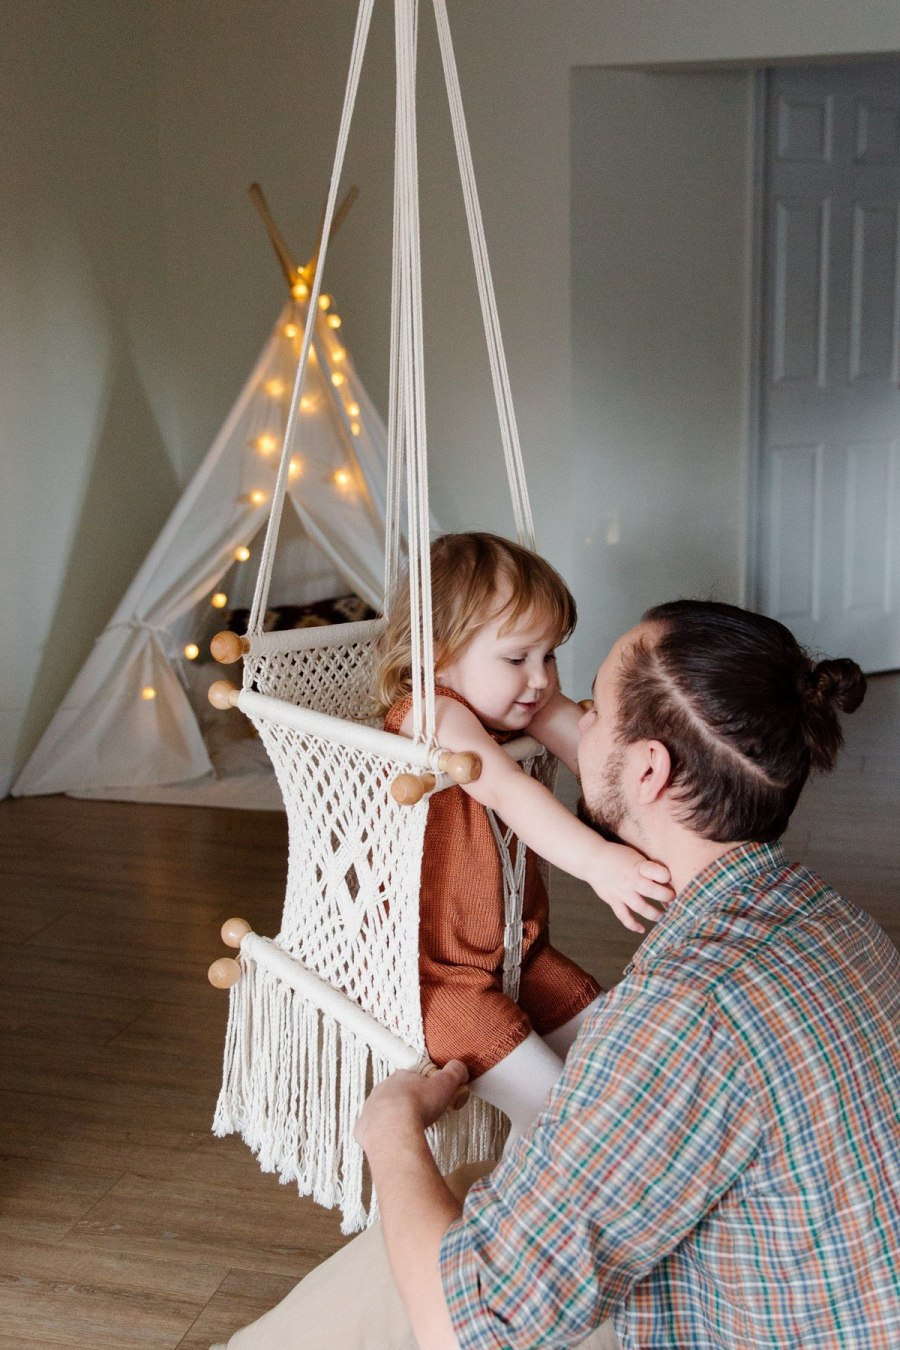 How your children play on their playset will change as they grow and develop. The 2-year-old in the toddler swing will become the 5-year-old who can swing all by herself to the adventurous 10-year-old climbing the knotted rope ladder.